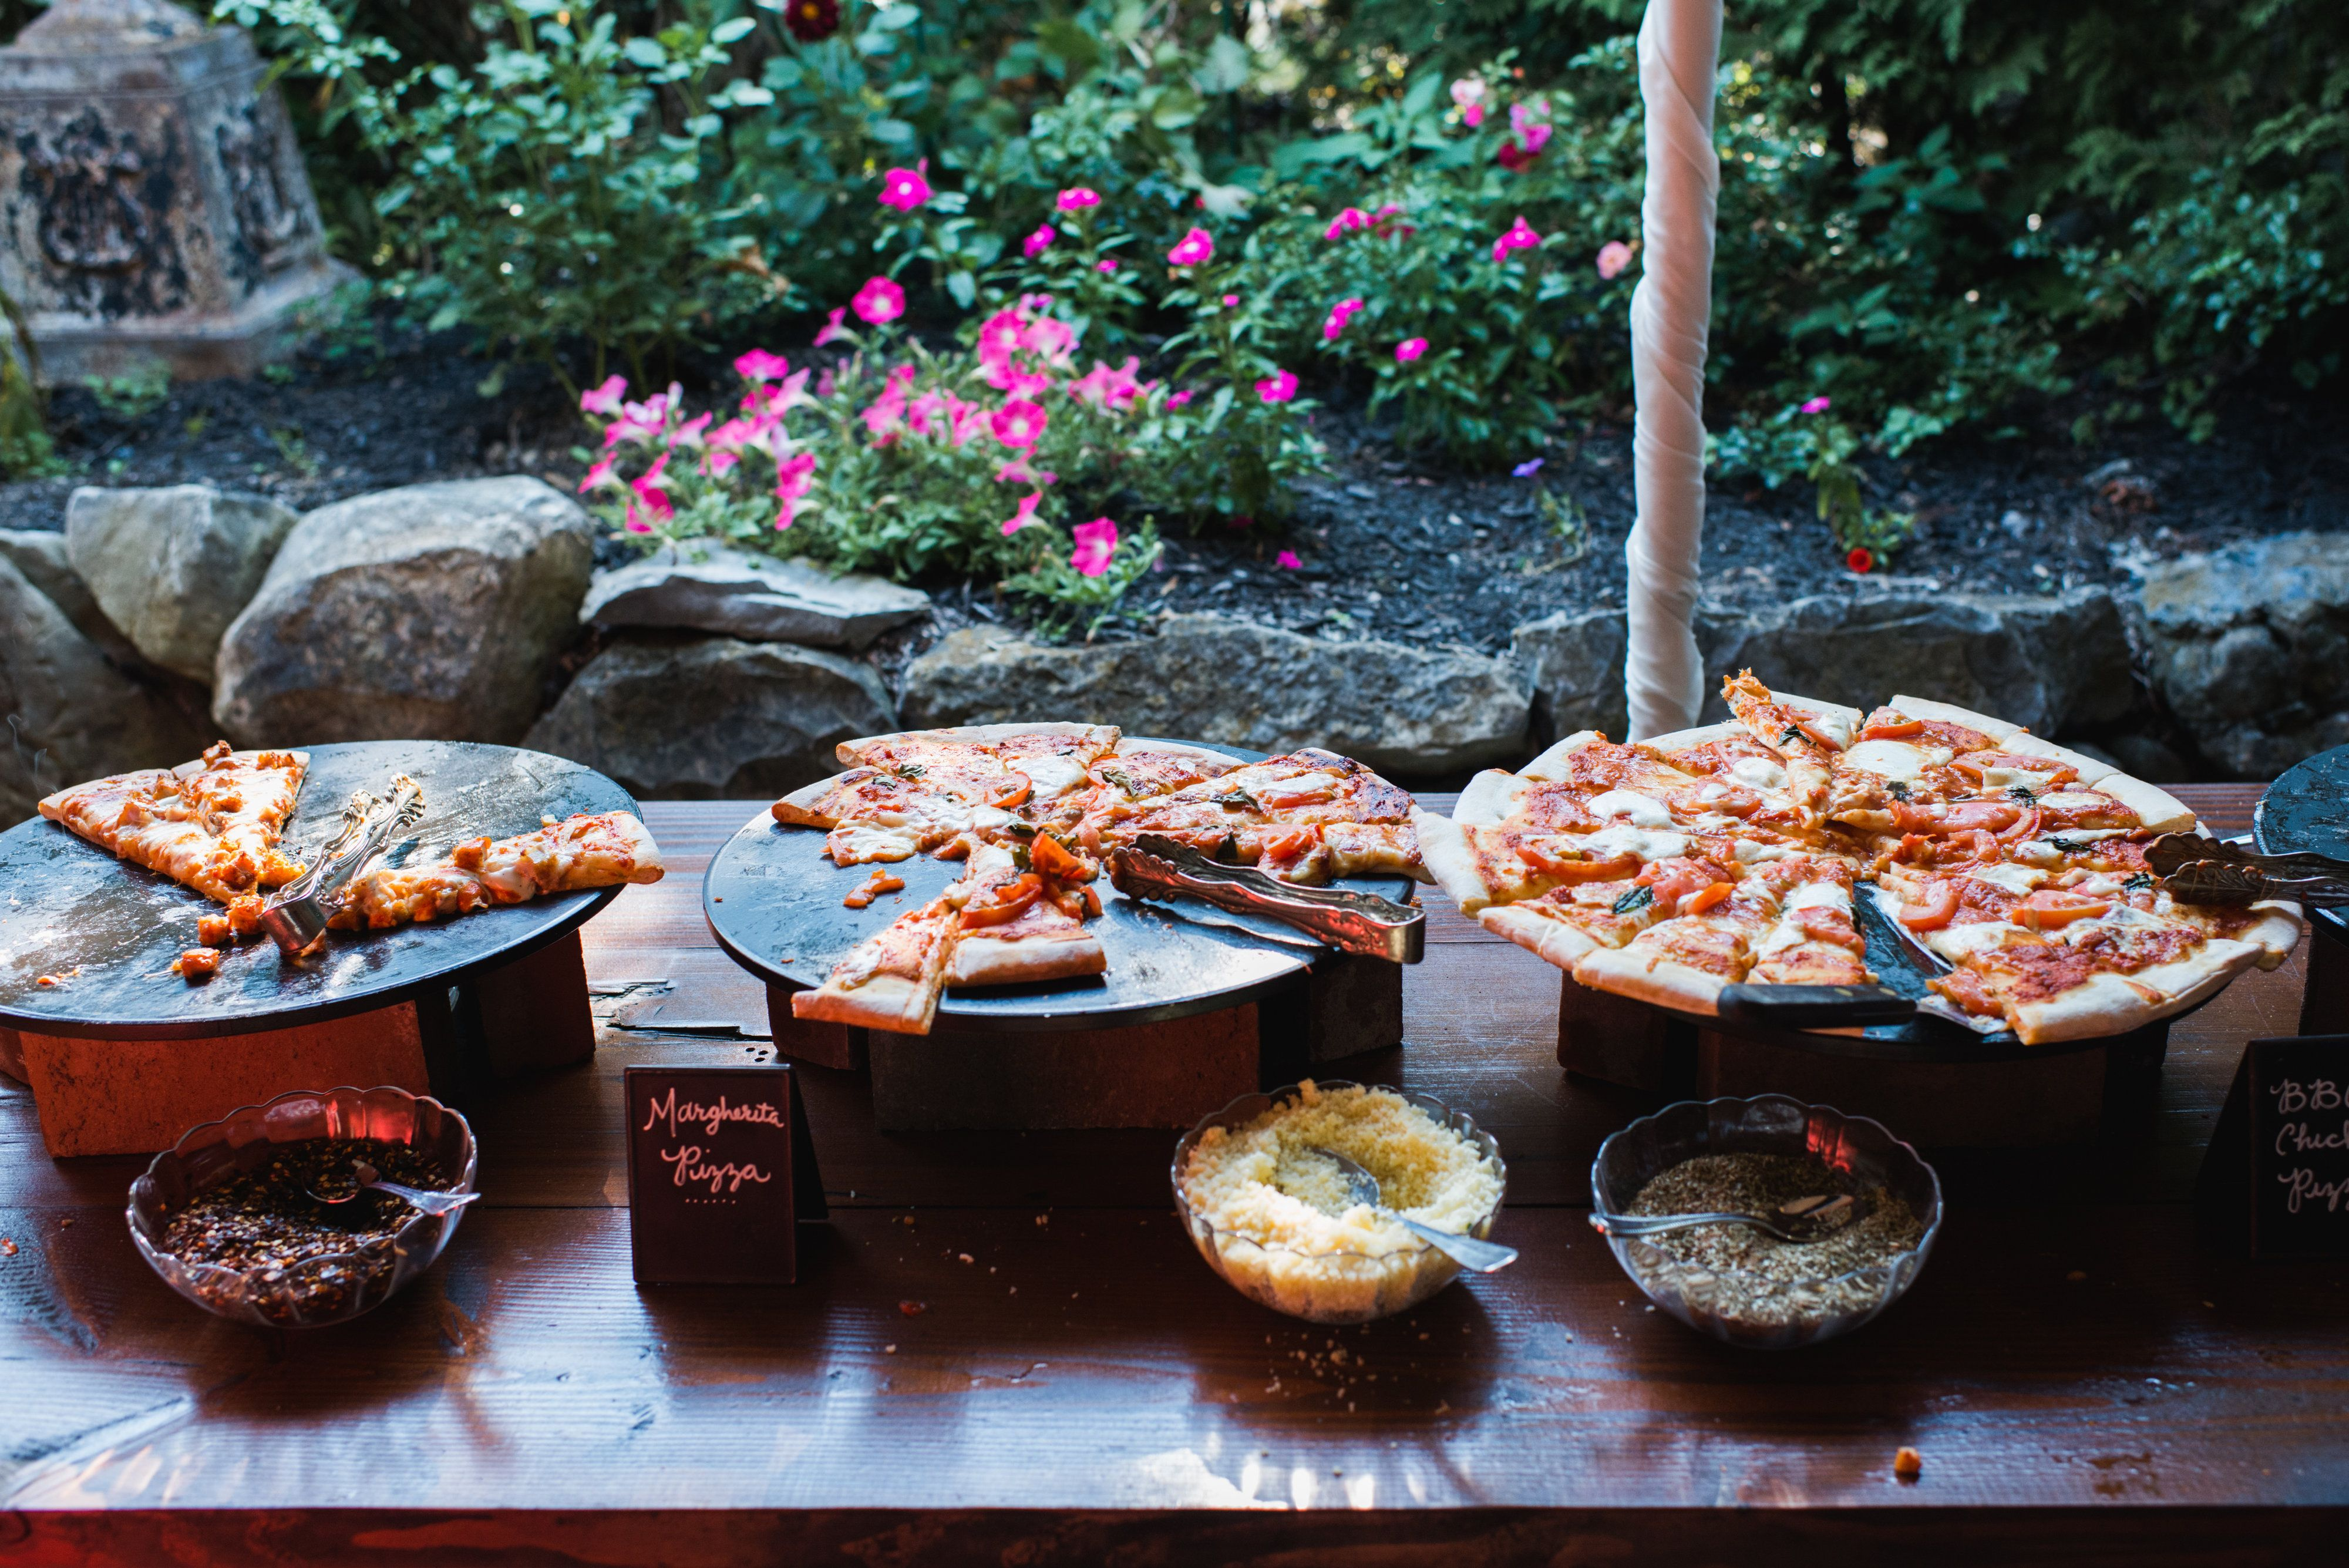 Cocktail Hour Pizza Station at Crossed Keys Estate wedding venue. Photography by Mary + Roy.